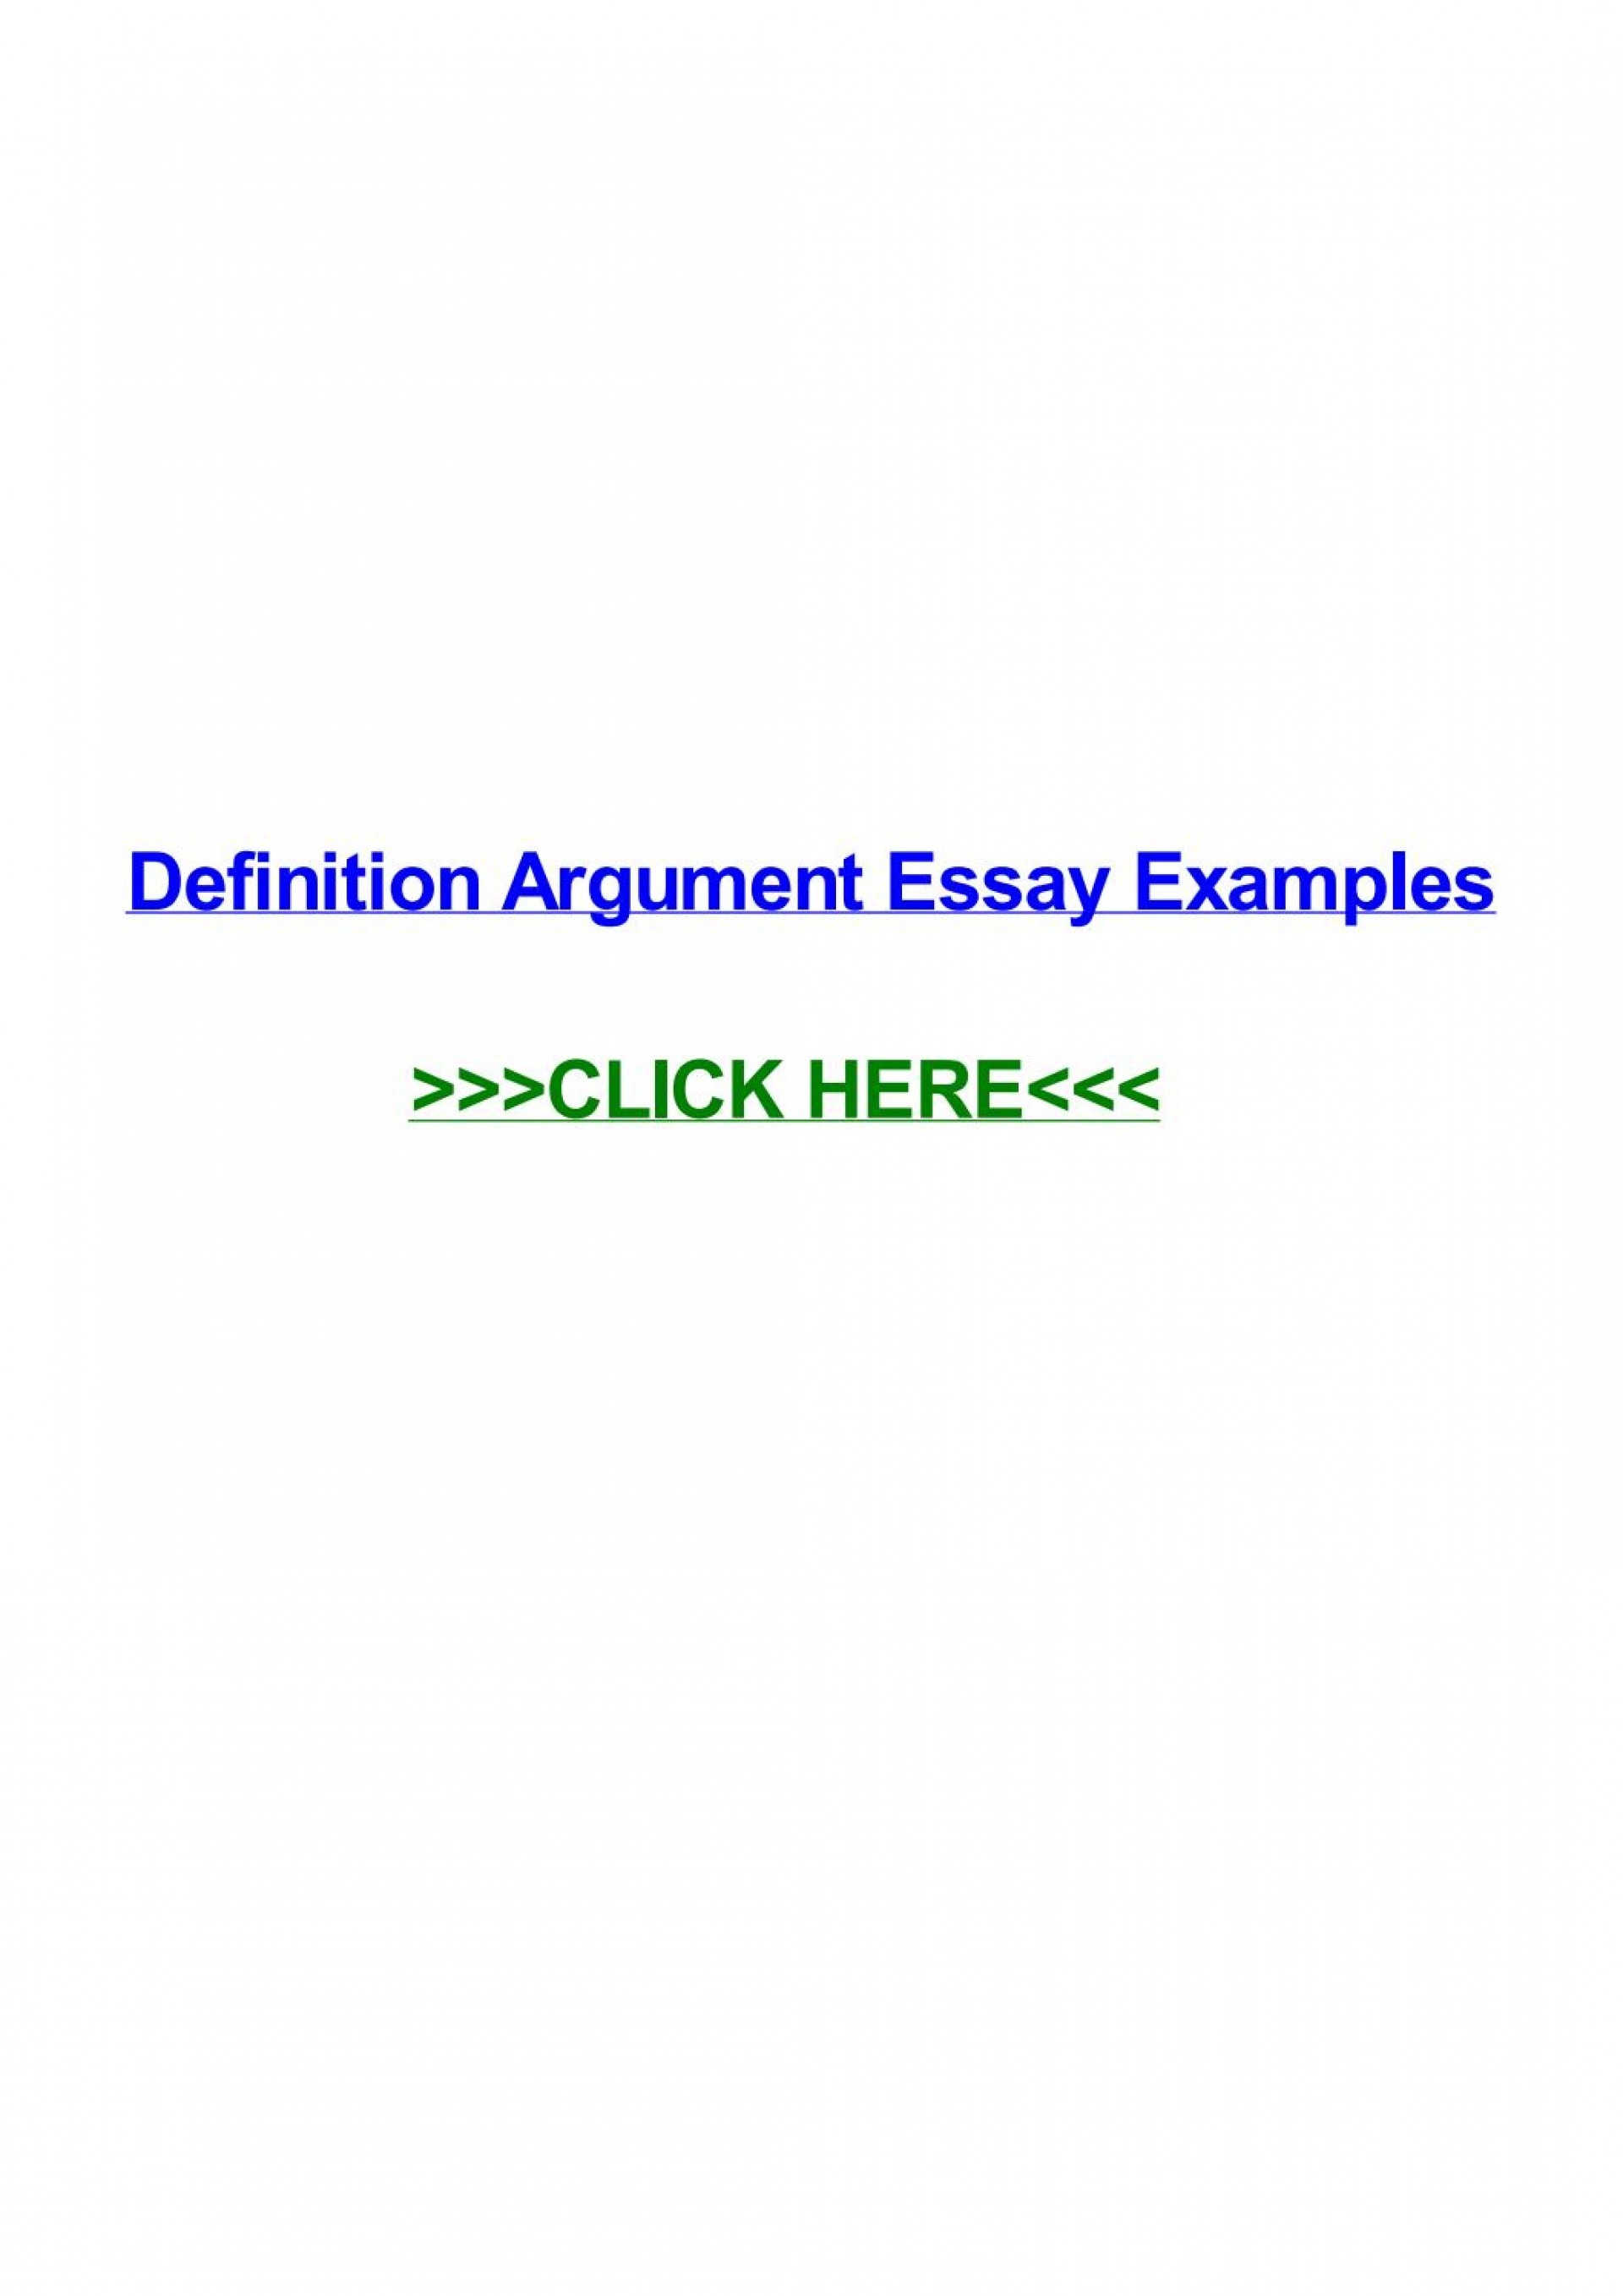 011 Essay Example Definition Argument Examples Page 1 Impressive Definitional Sample 1920